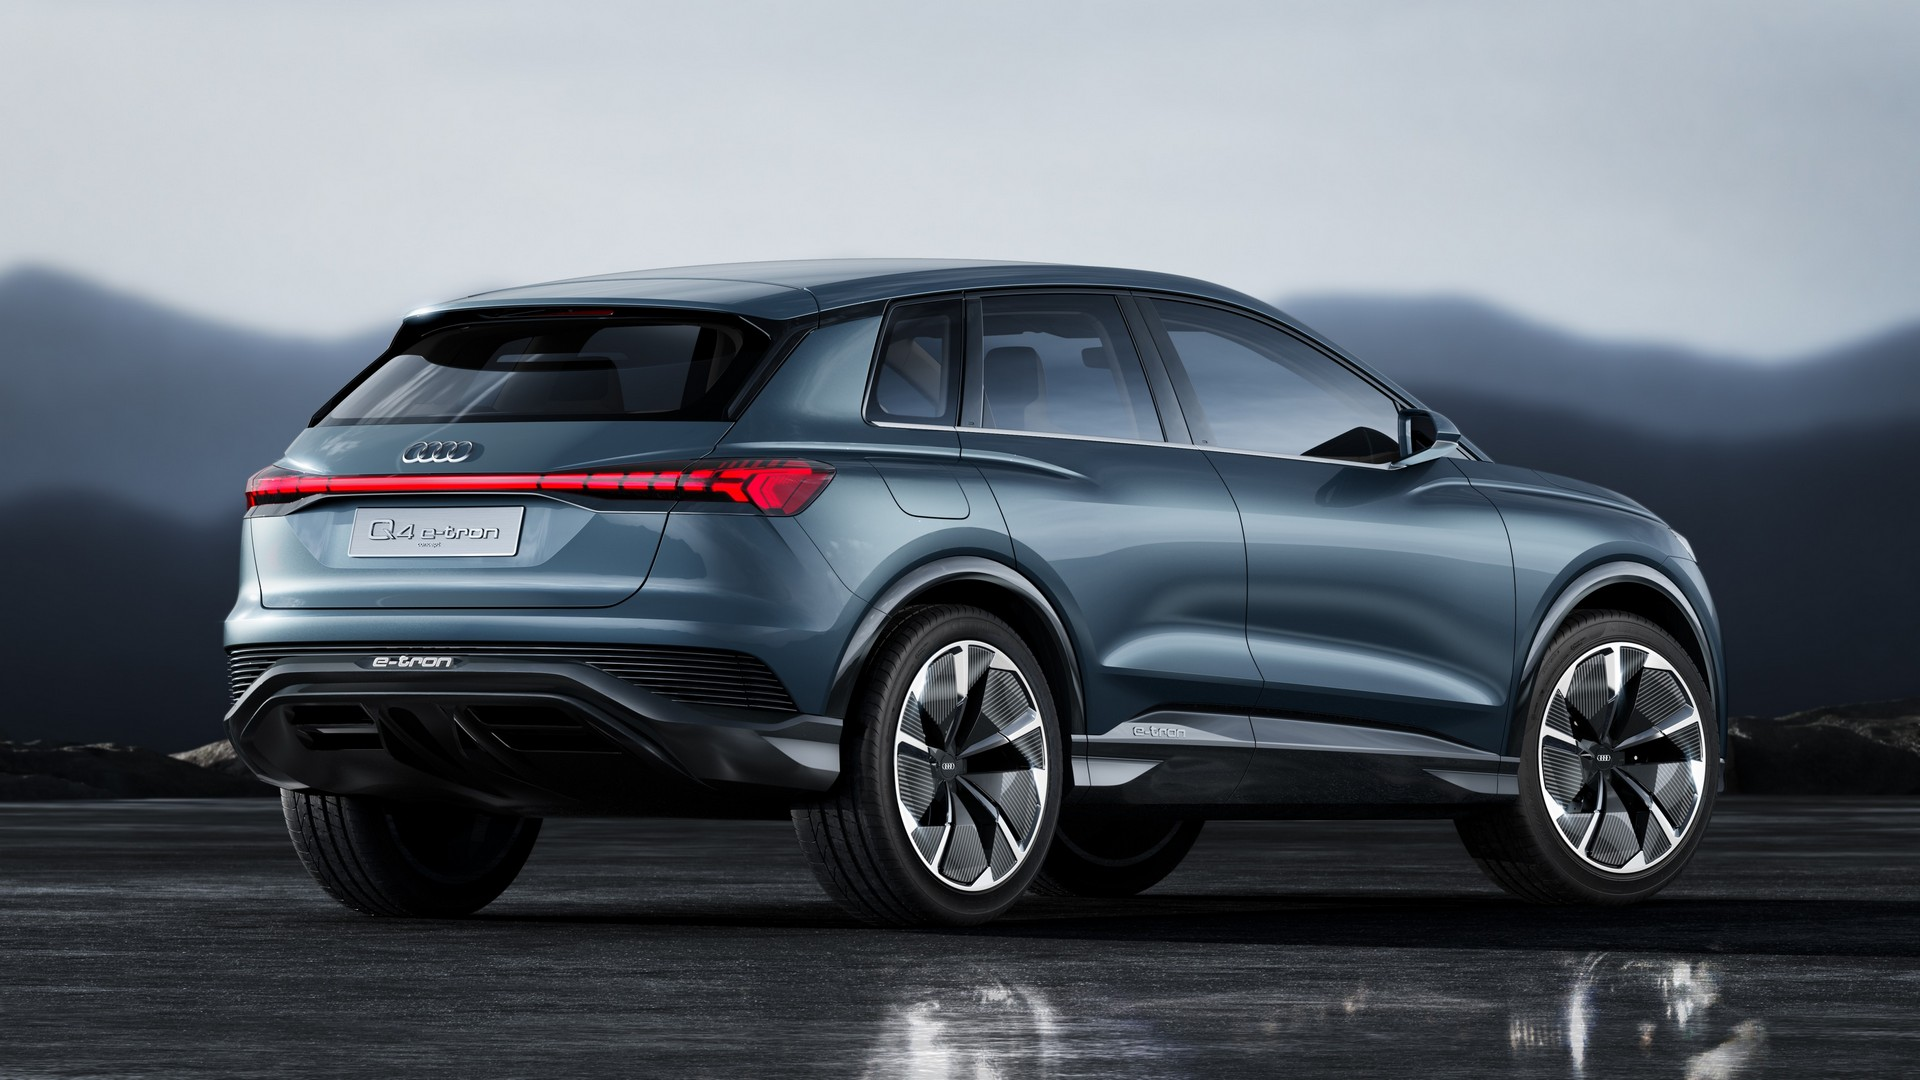 Audi is getting multiple electric cars ready for premiere, and unlike many other manufacturers, it uses different design approaches with each one.